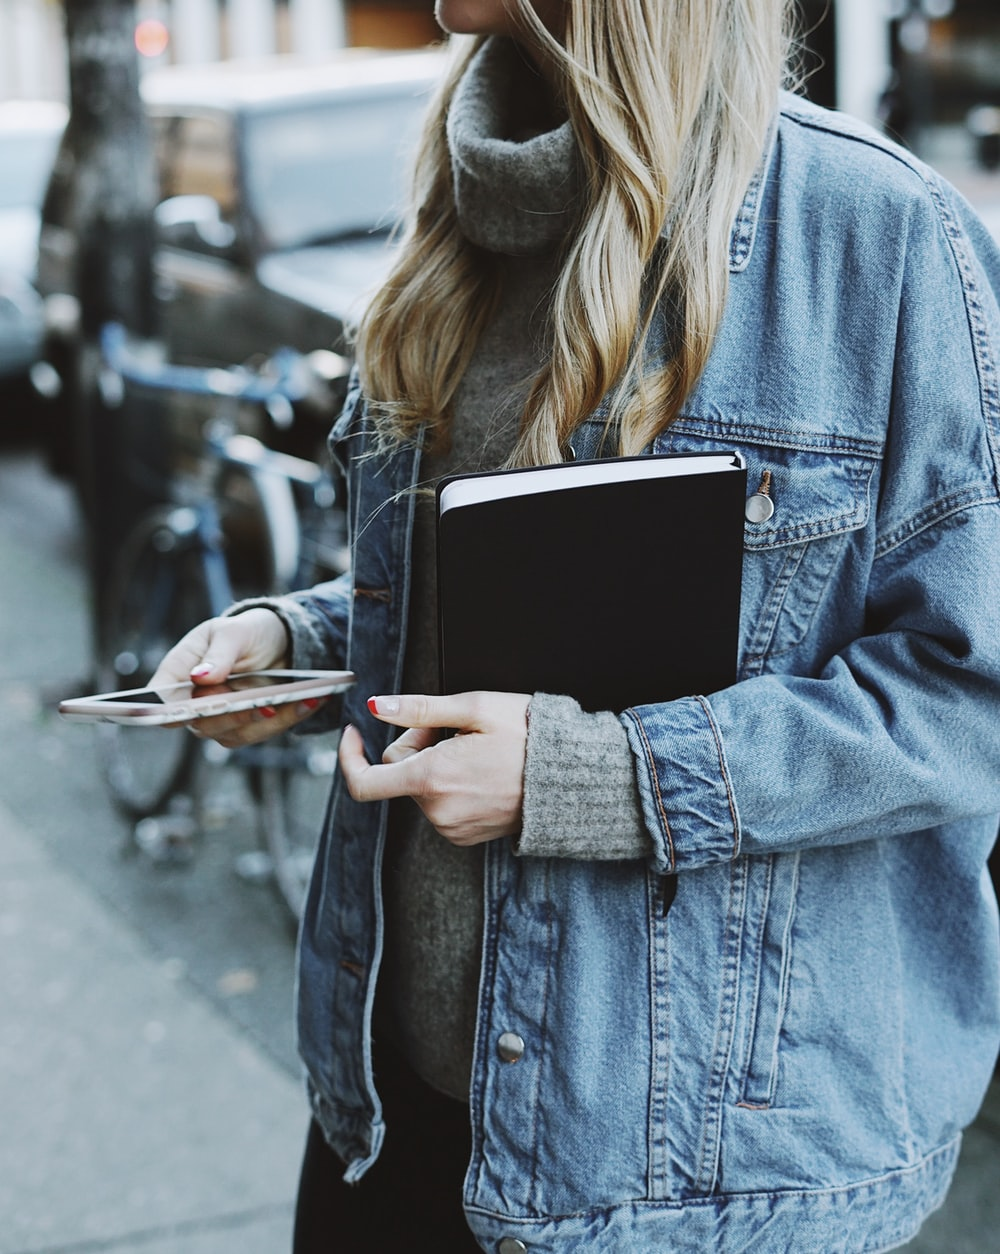 woman standing on sidewalk while holding book and smartphone